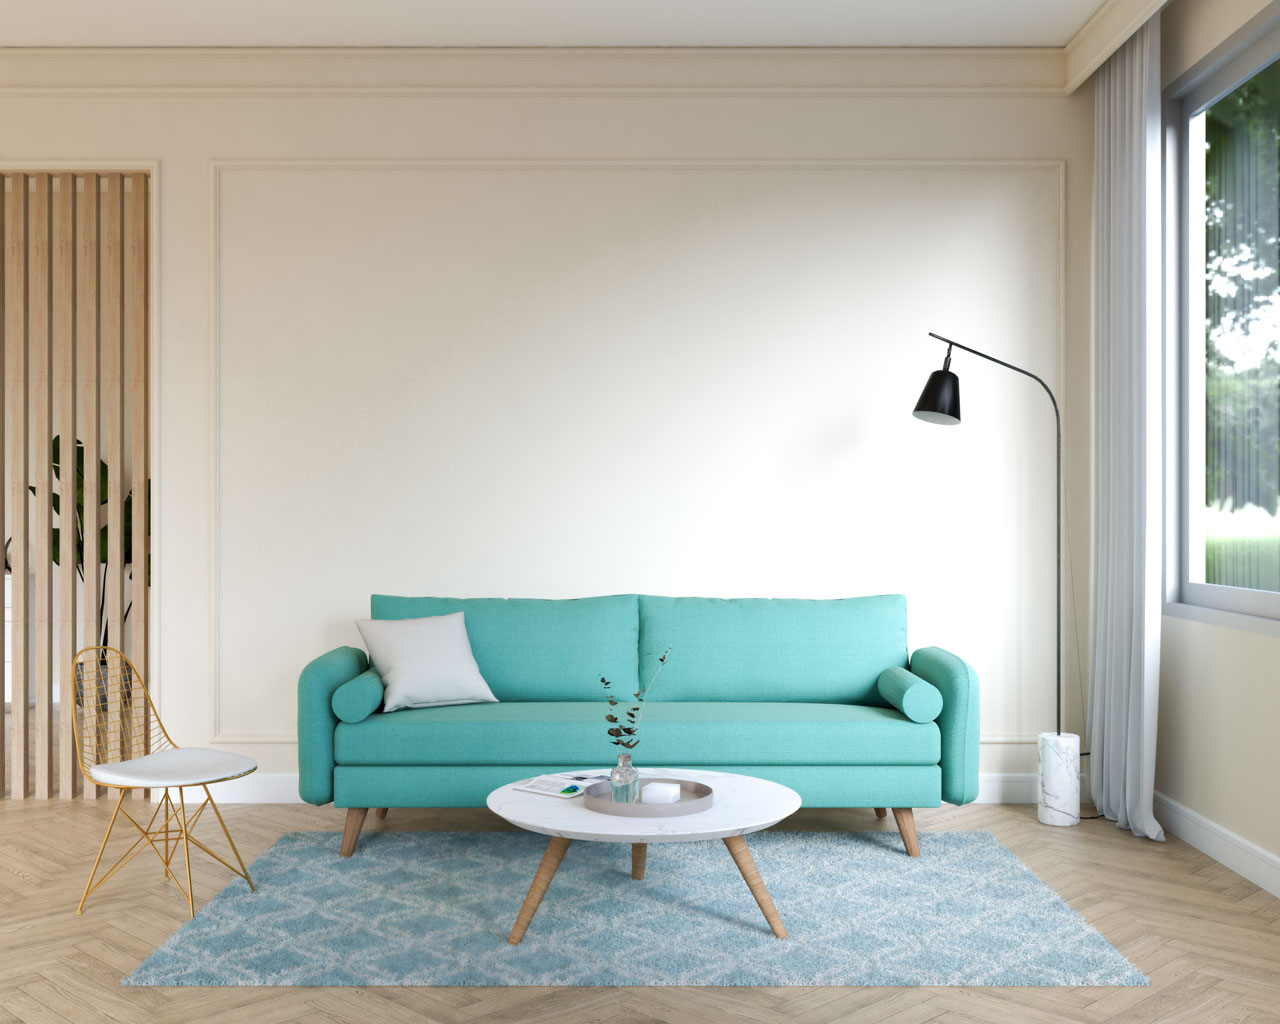 Teal couch in front of beige wall